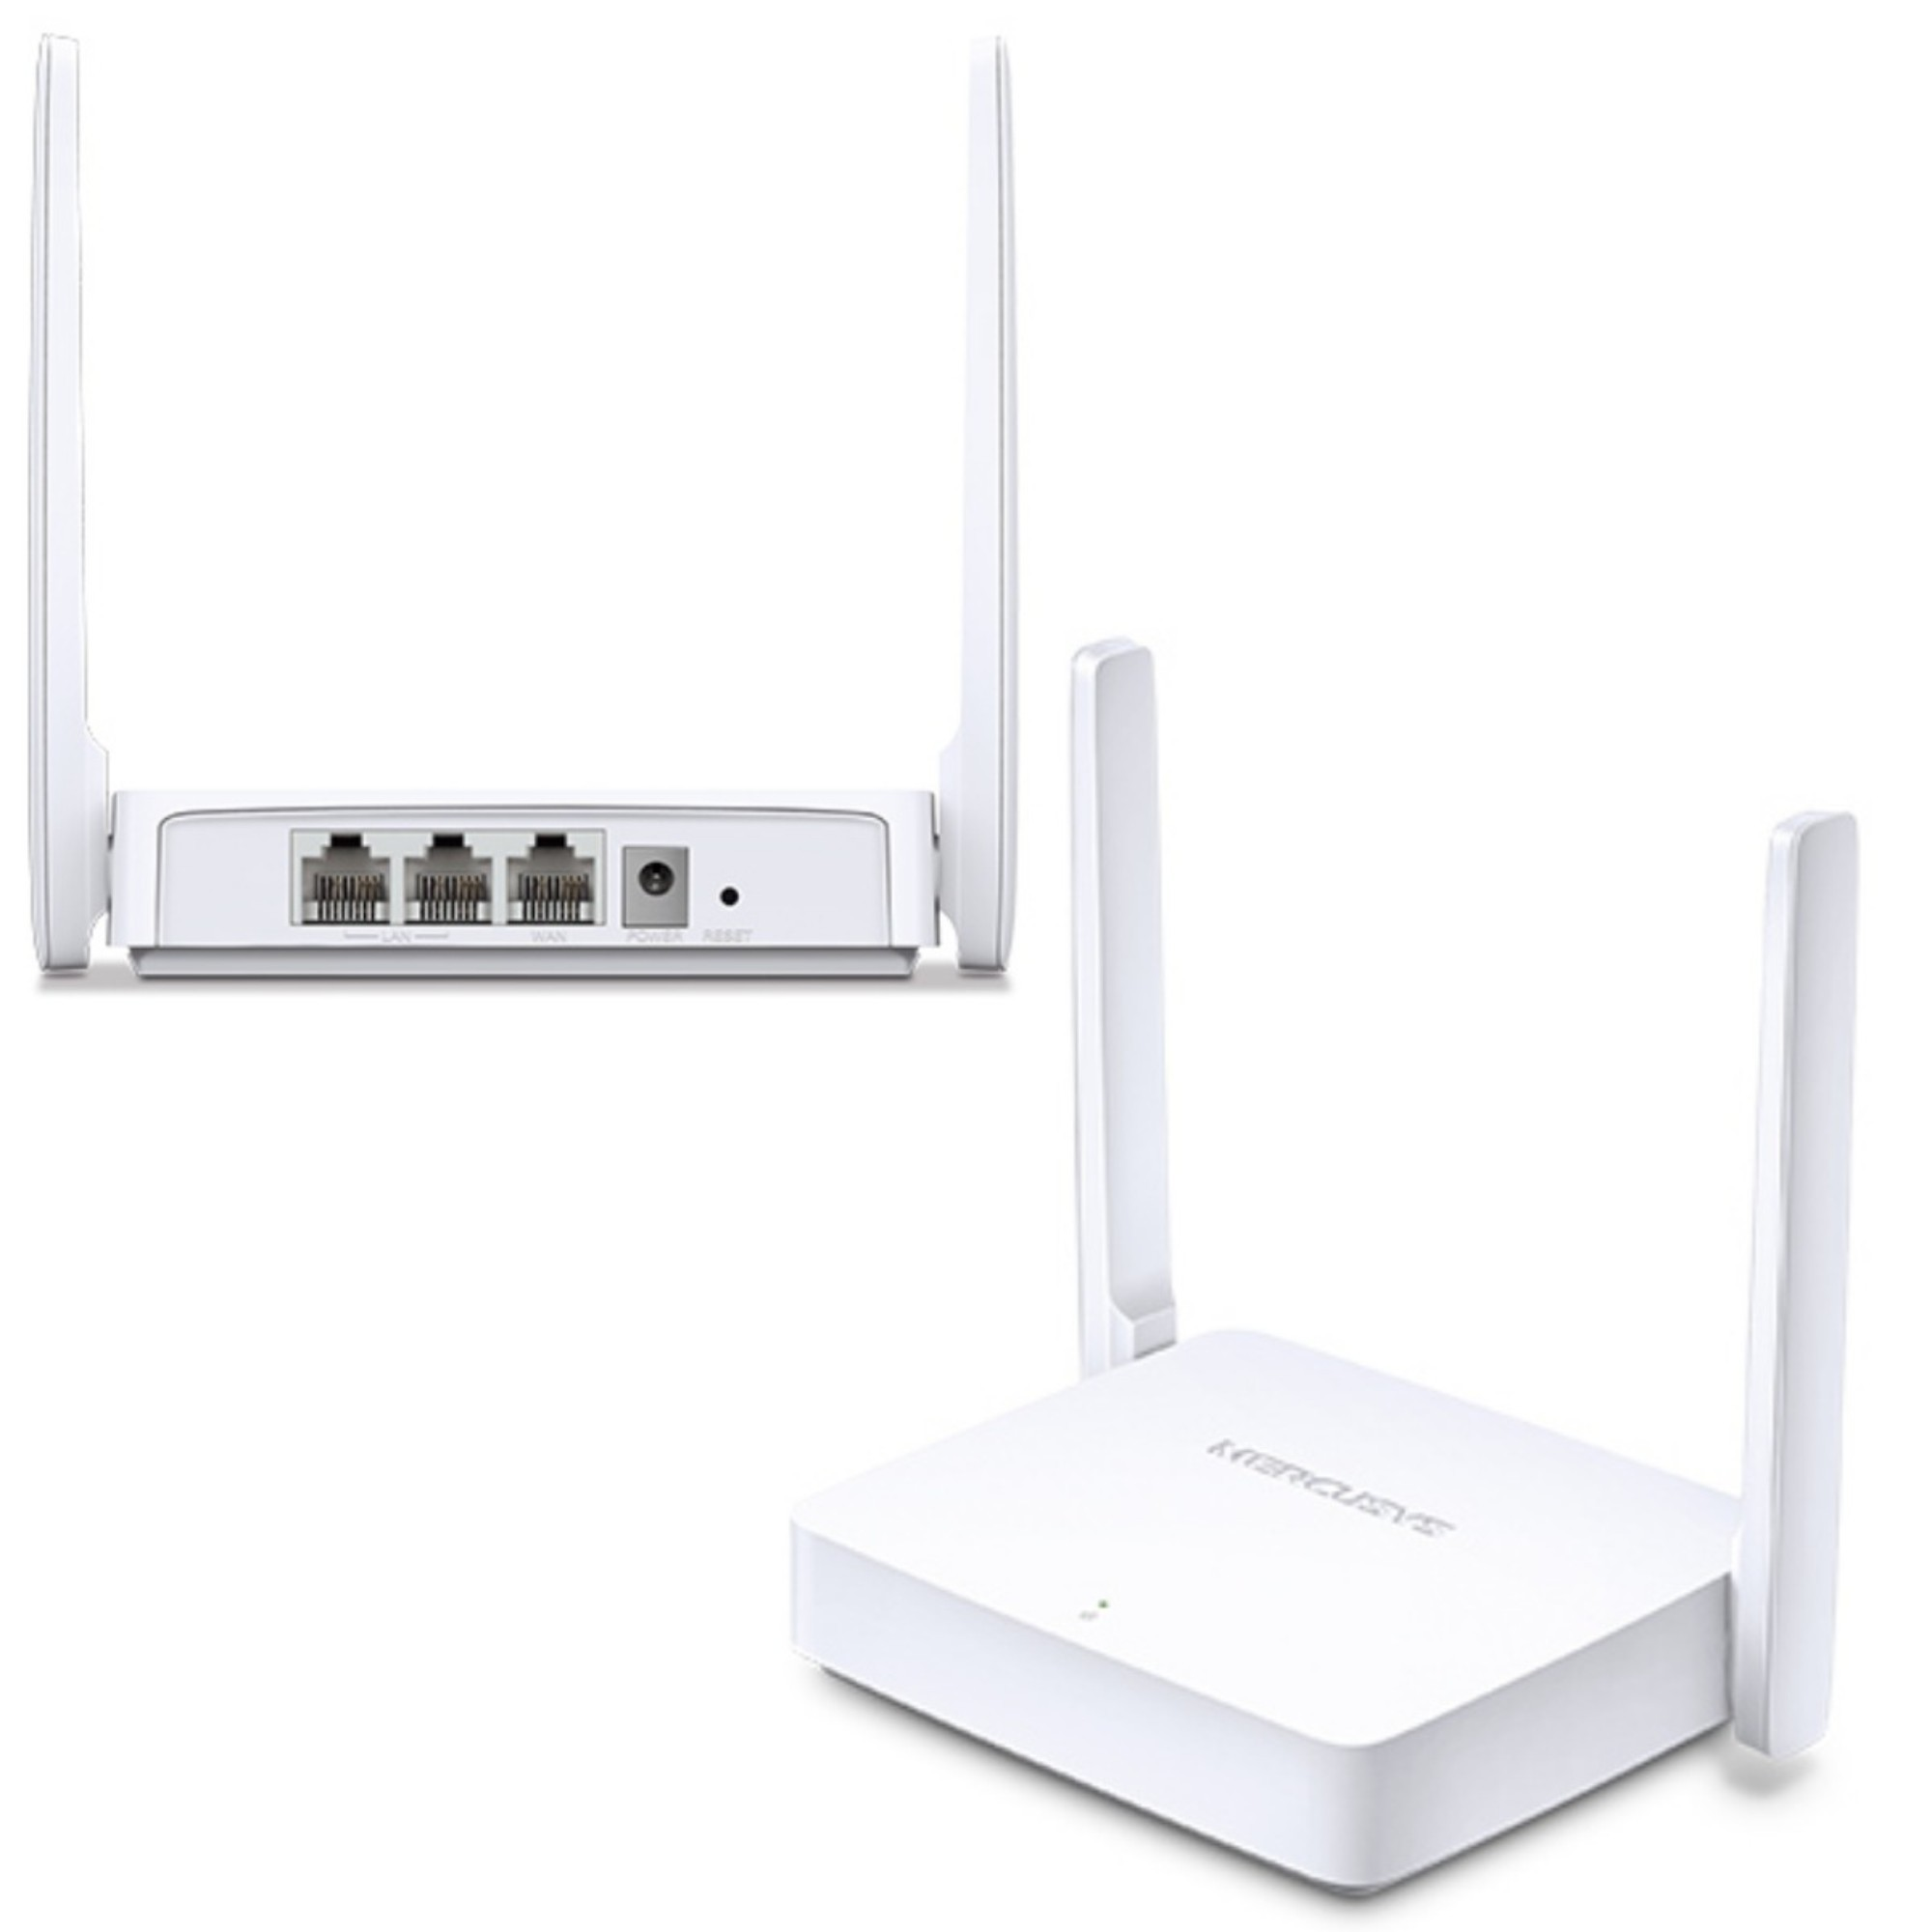 Roteador Wireless Mercusys MW301R 300Mbps 2 Antenas